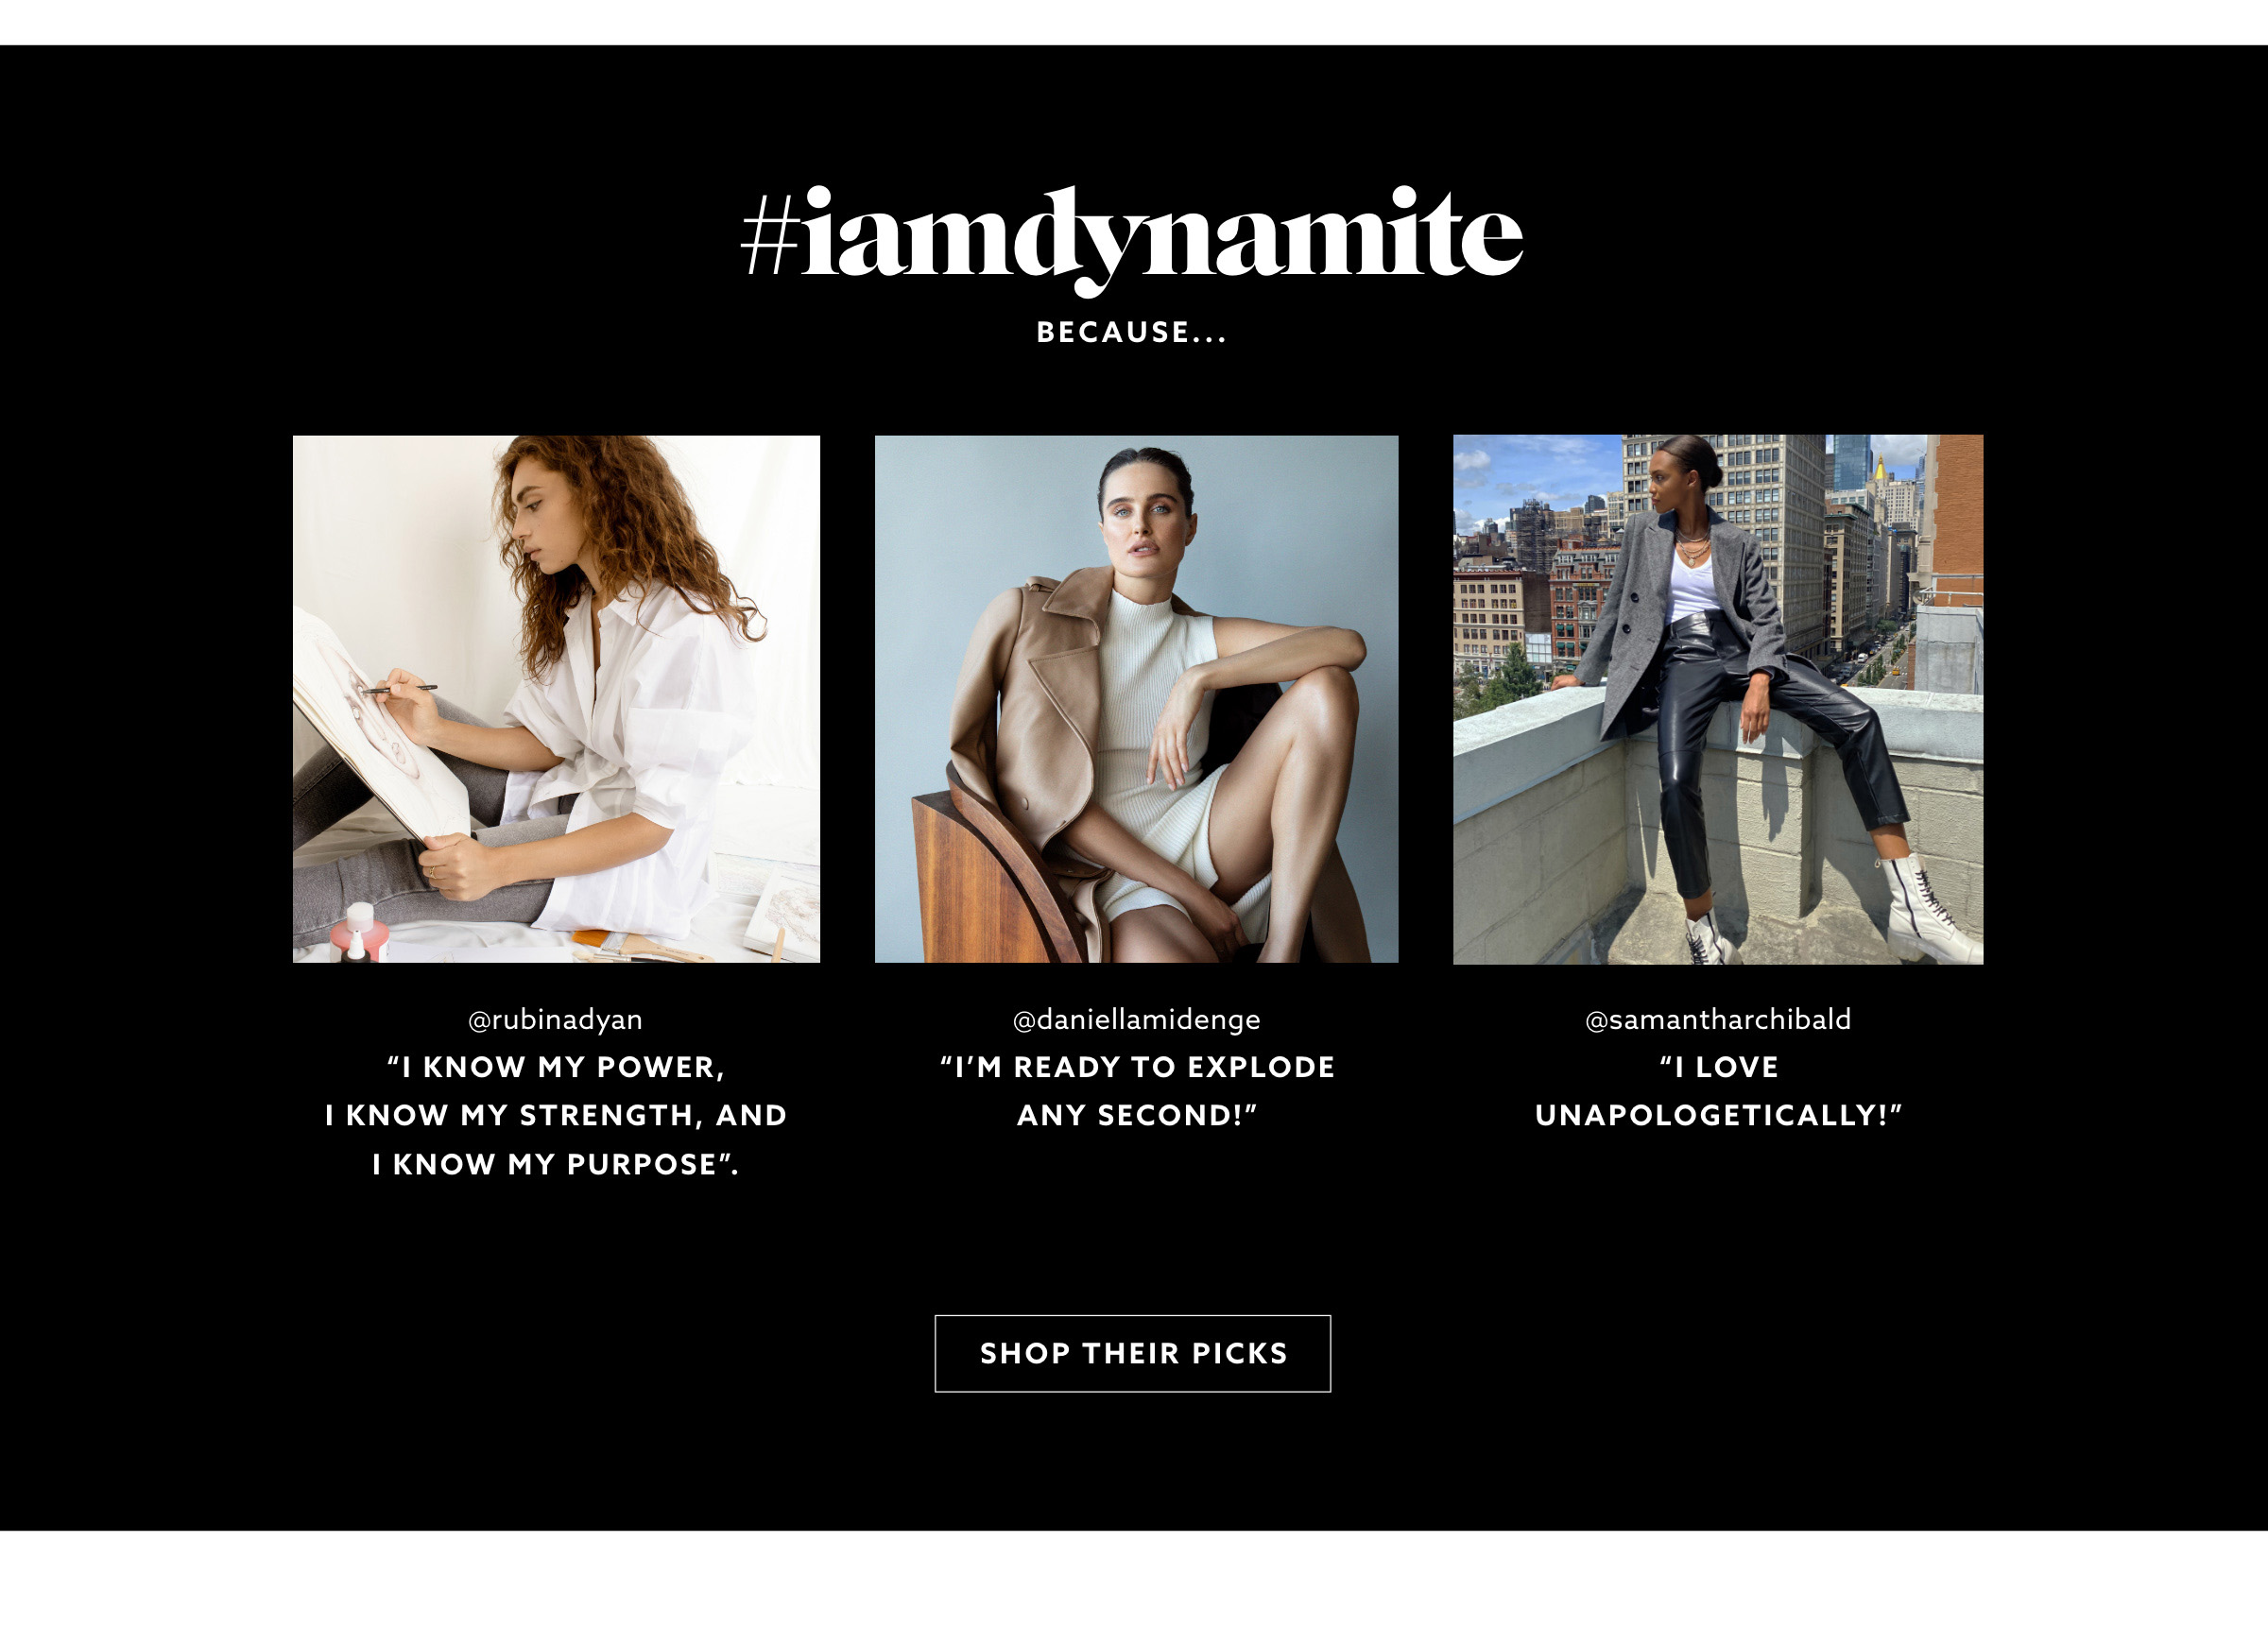 Join the muse project. Tell us why you're Dynamite on instagram for a chance to win a new wardrobe worth $1000.